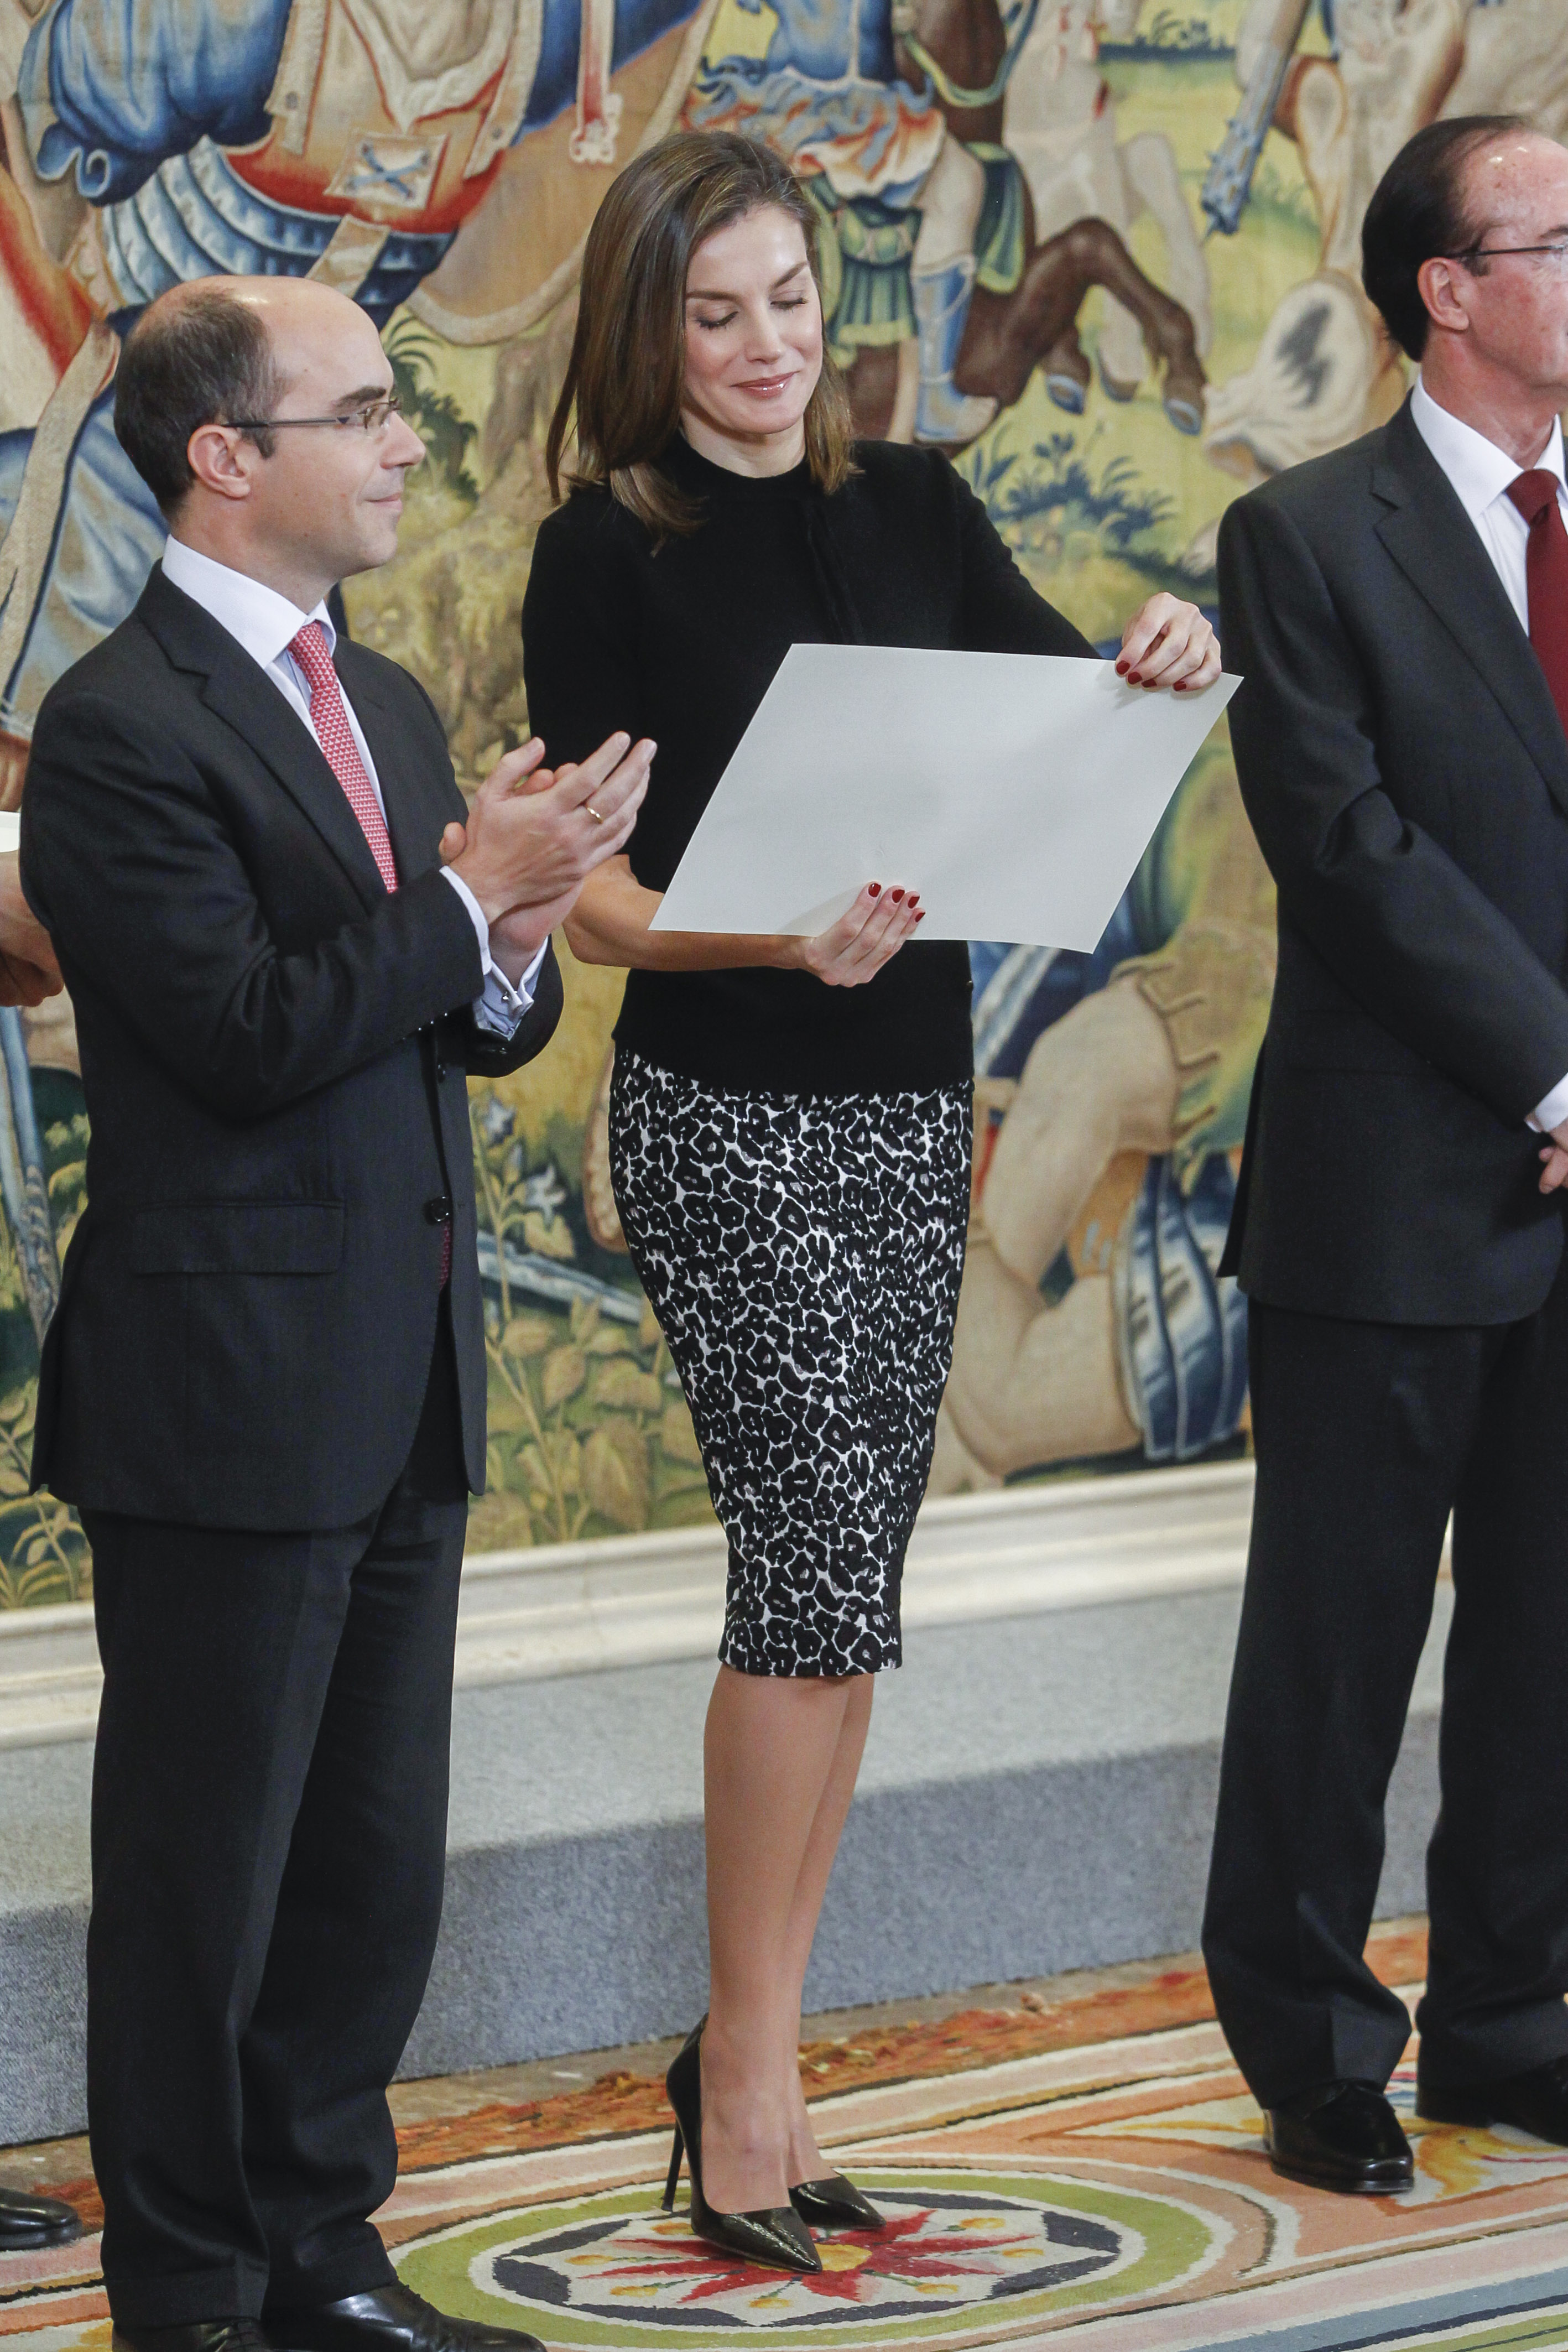 Queen Letizia attends the delivery of the Tomas Francisco Prieto awards at Zarzuela Palace in Madrid, Spain <P> Pictured: Queen Letizia <B>Ref: SPL1656017  090218  </B><BR/> Picture by: Michael Murdock / Splash News<BR/> </P><P> <B>Splash News and Pictures</B><BR/> Los Angeles:310-821-2666<BR/> New York:212-619-2666<BR/> London:870-934-2666<BR/> <span id=